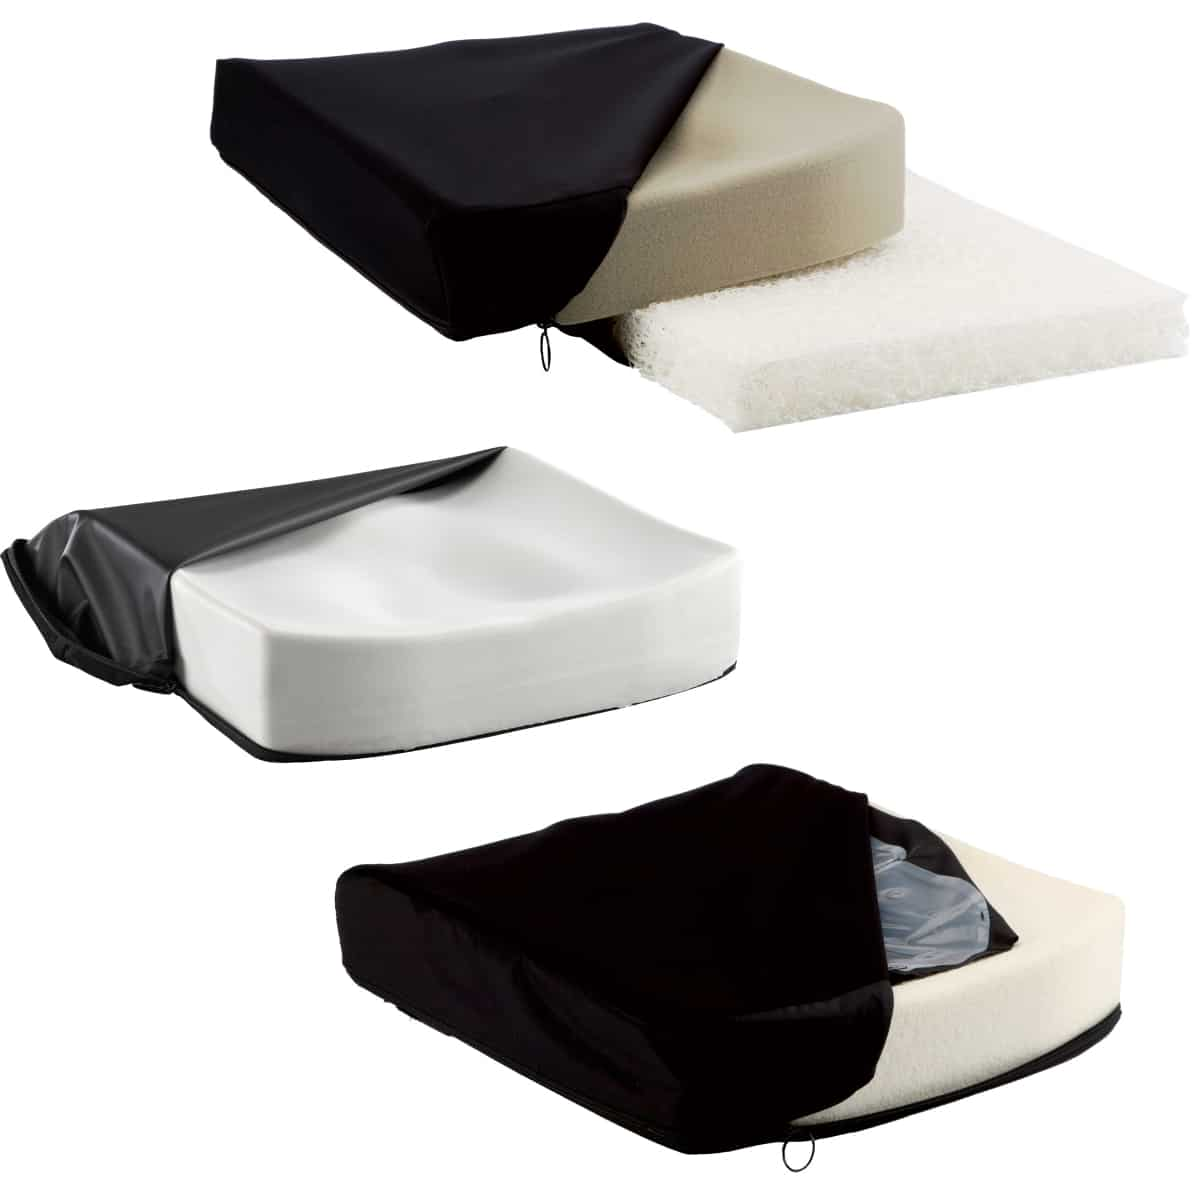 wheelchair cushion types accent chairs under 200 cushions  guide and top picks mobility wise